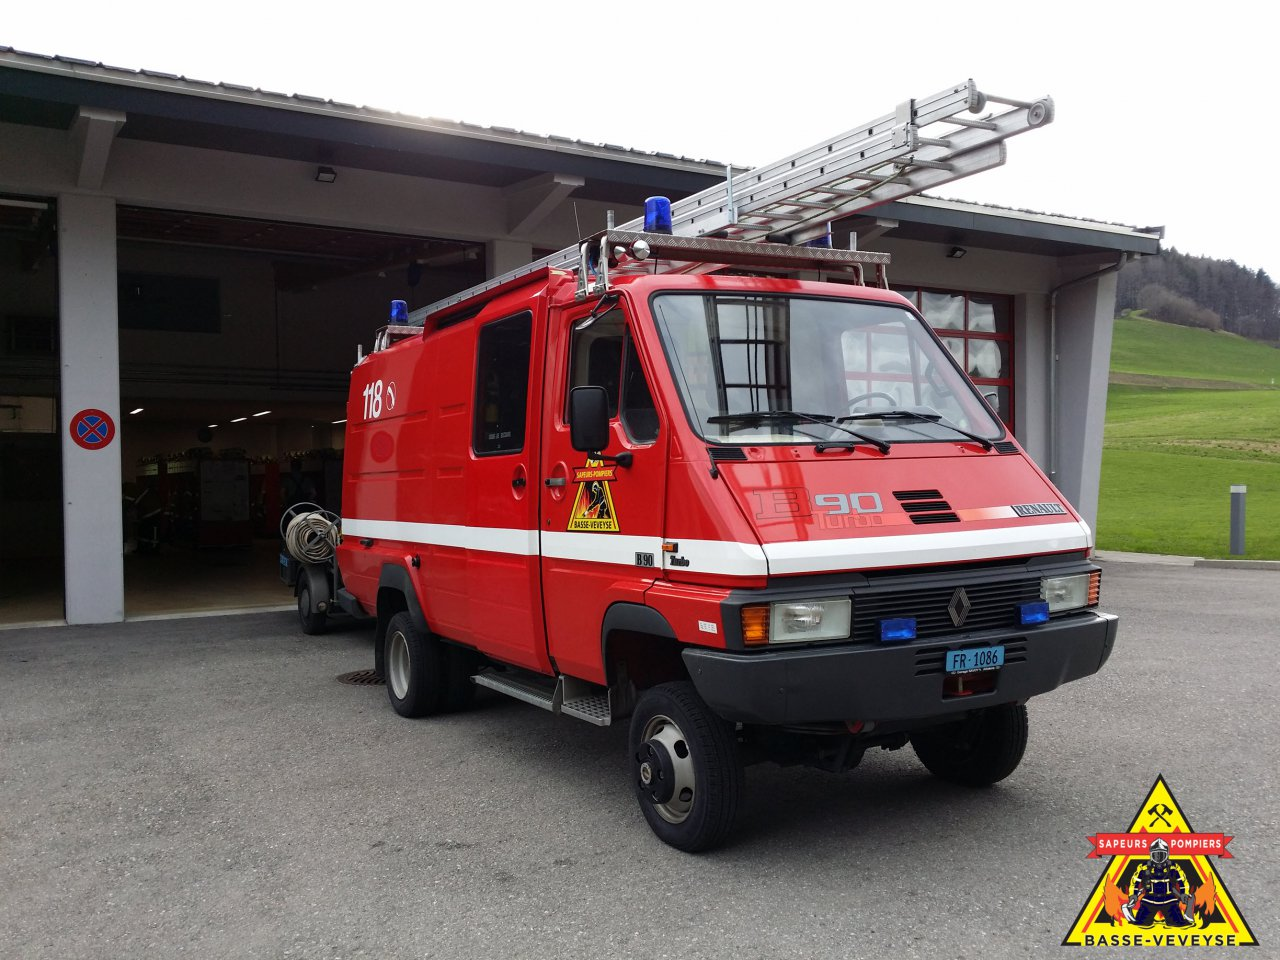 Divers » ImagesFixes » Véhicule Renault B90